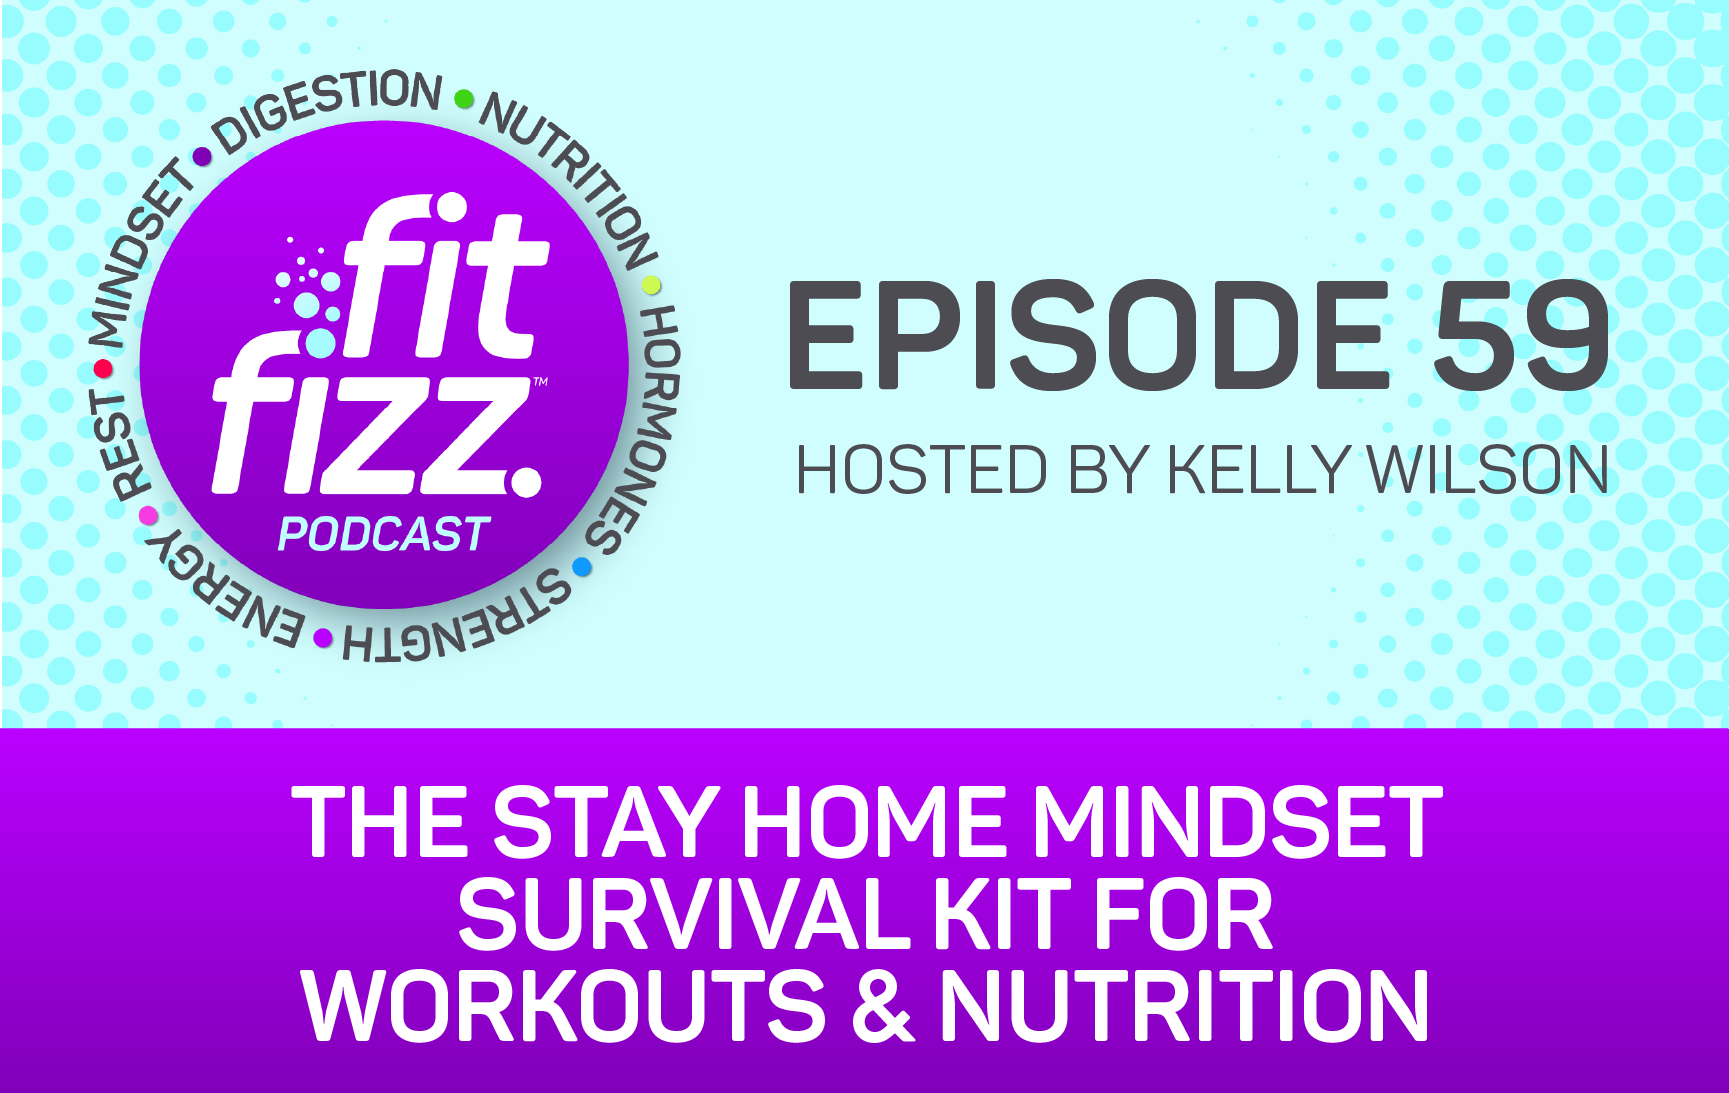 Ep. 59: The Stay Home Mindset Survival Kit for Workouts & Nutrition